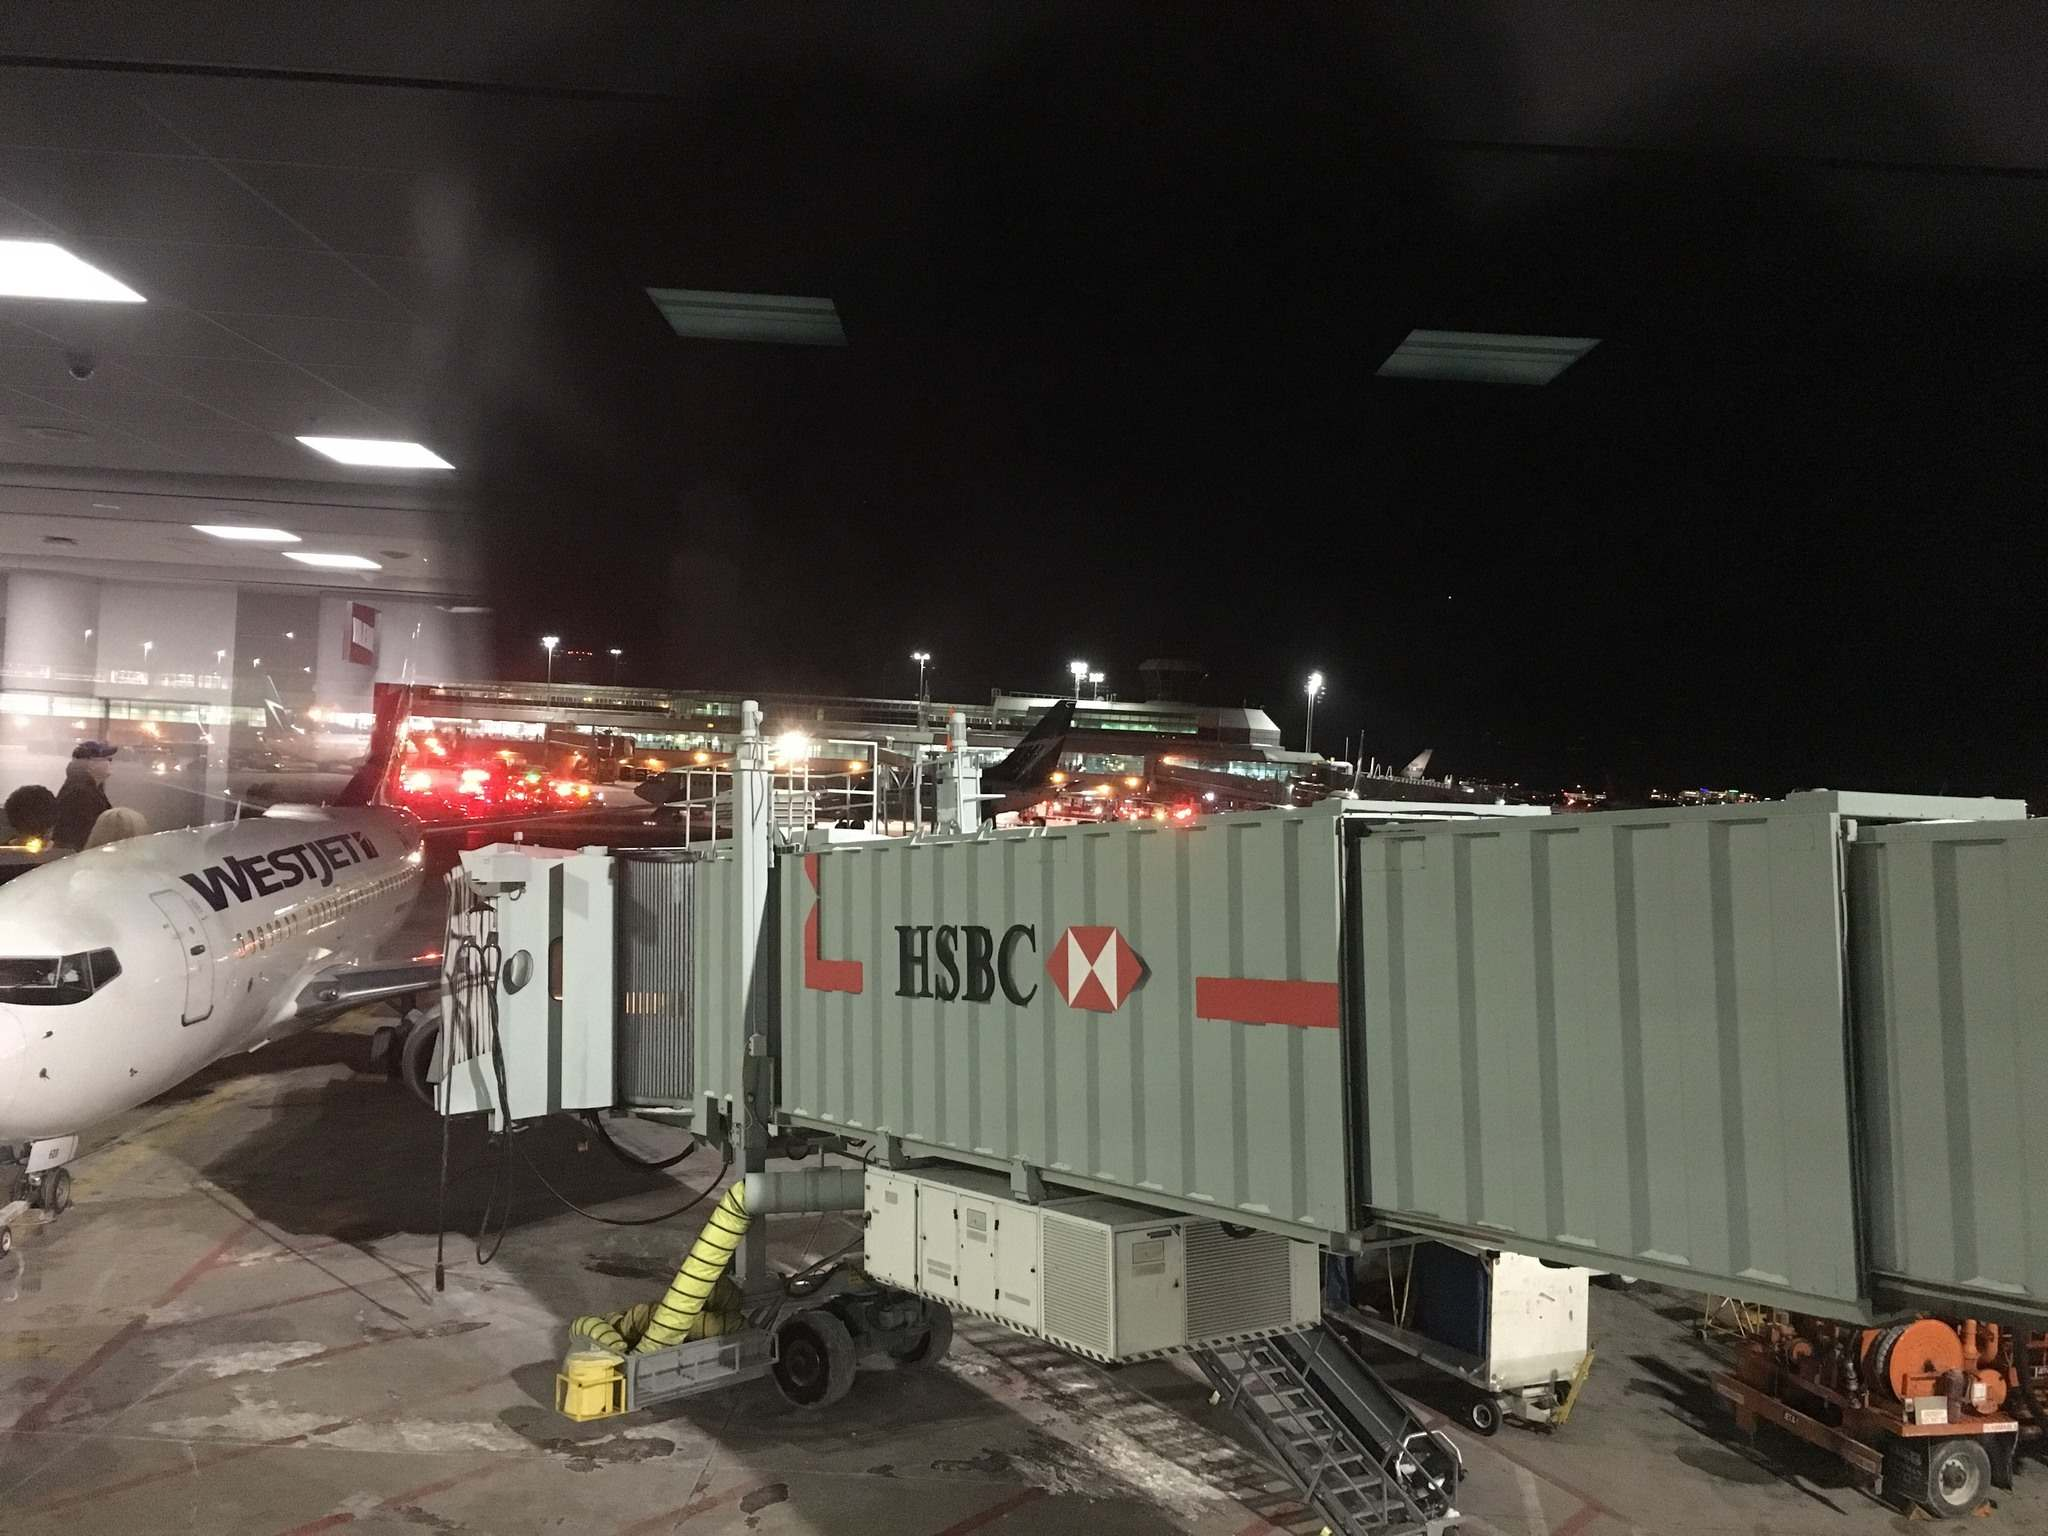 'Sheer chaos' as planes collide at Pearson airport